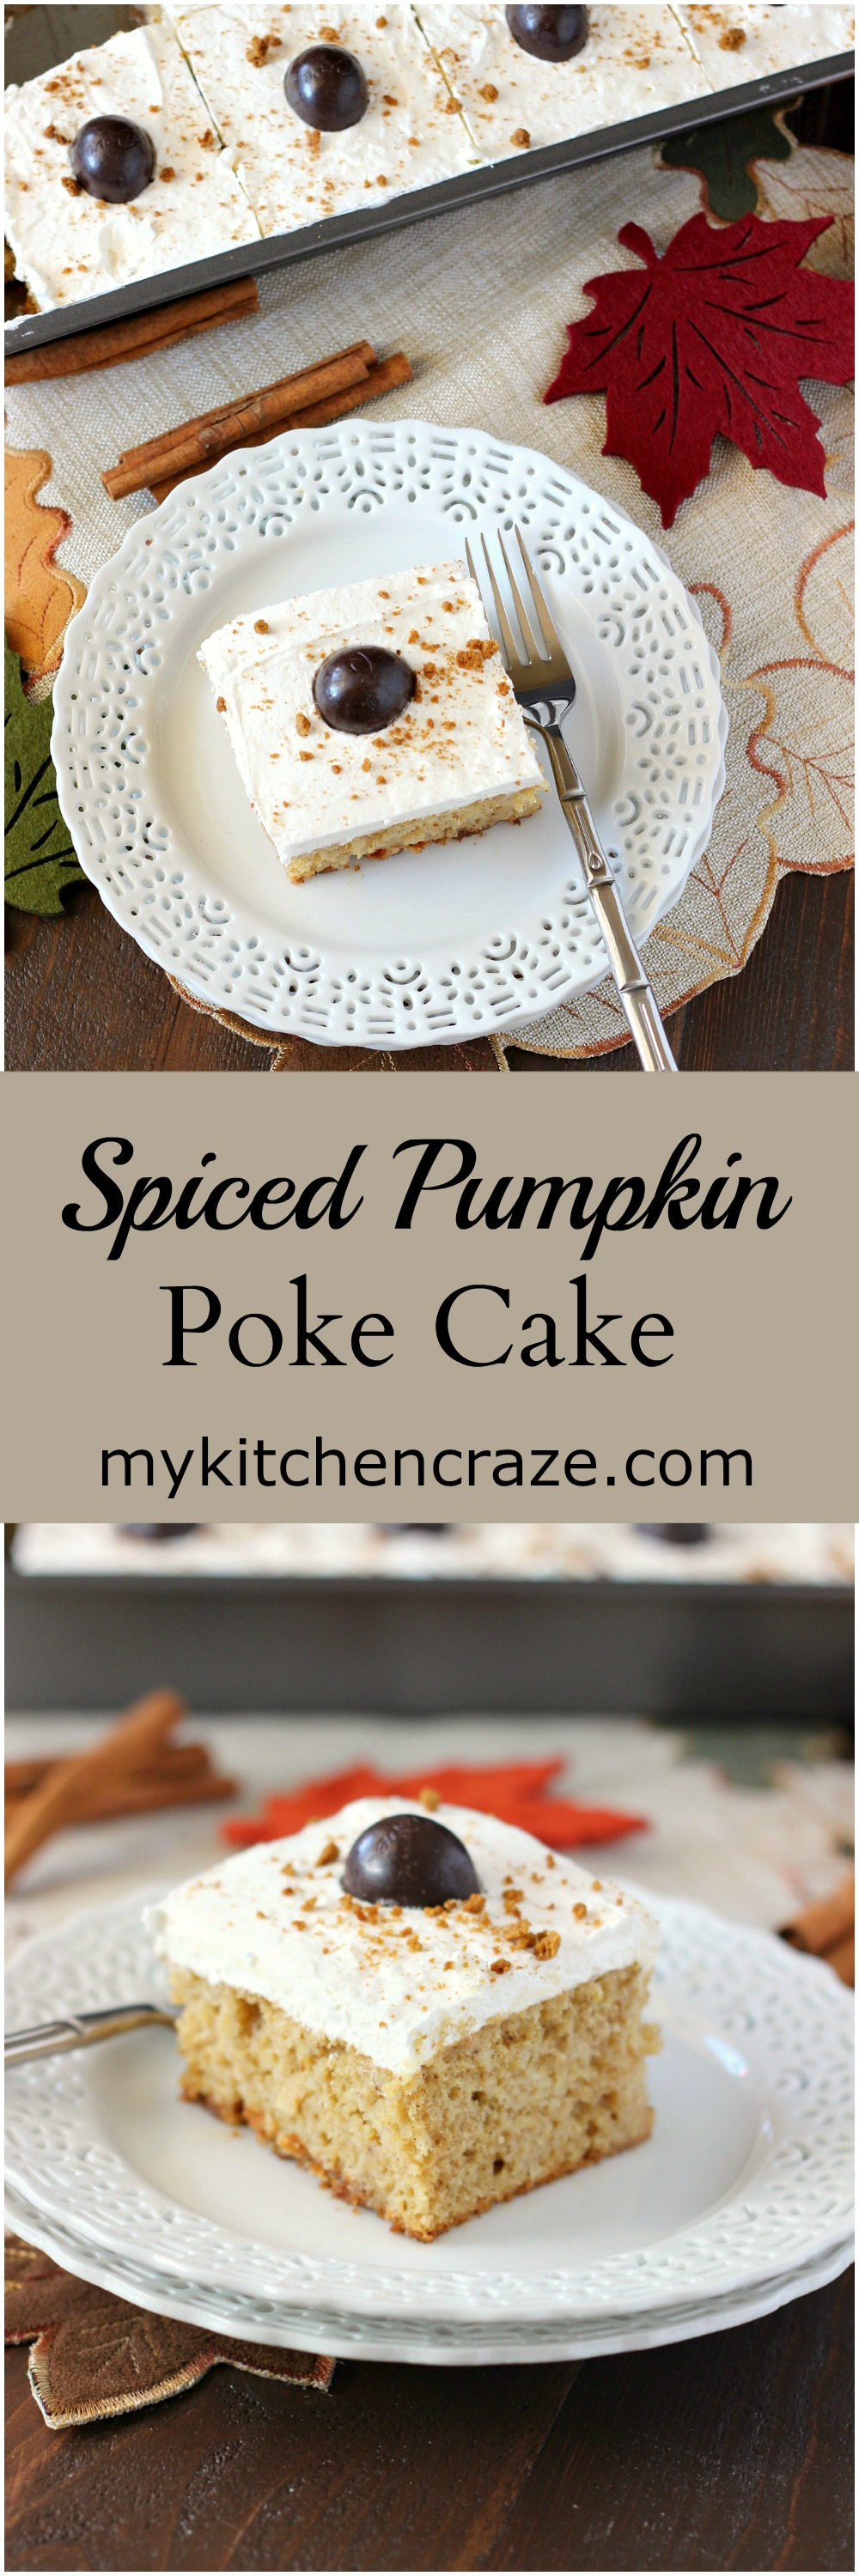 Spiced Pumpkin Poke Cake ~ mykitchencraze.com ~ Moist spiced pumpkin cake smothered with condensed milk, then topped with a cream cheese whipped frosting and a dark chocolate pumpkin. Delicious! #FallFlavors @Target [ad]